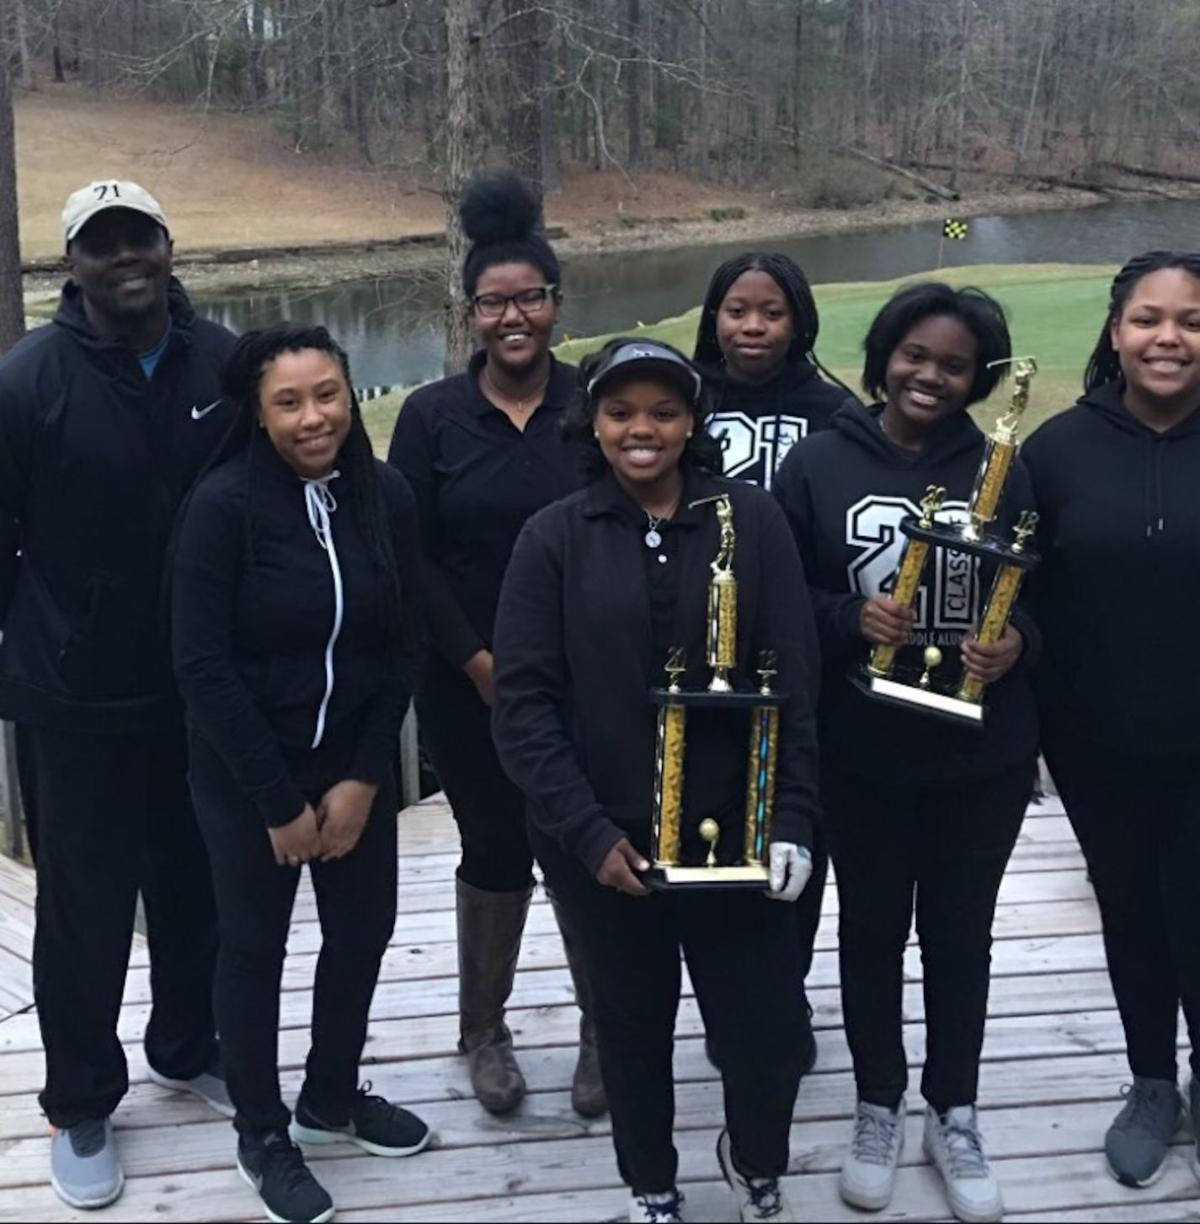 GOLF: Riverdale sweeps county championships; Nia Cole wins fourth straight individual championship